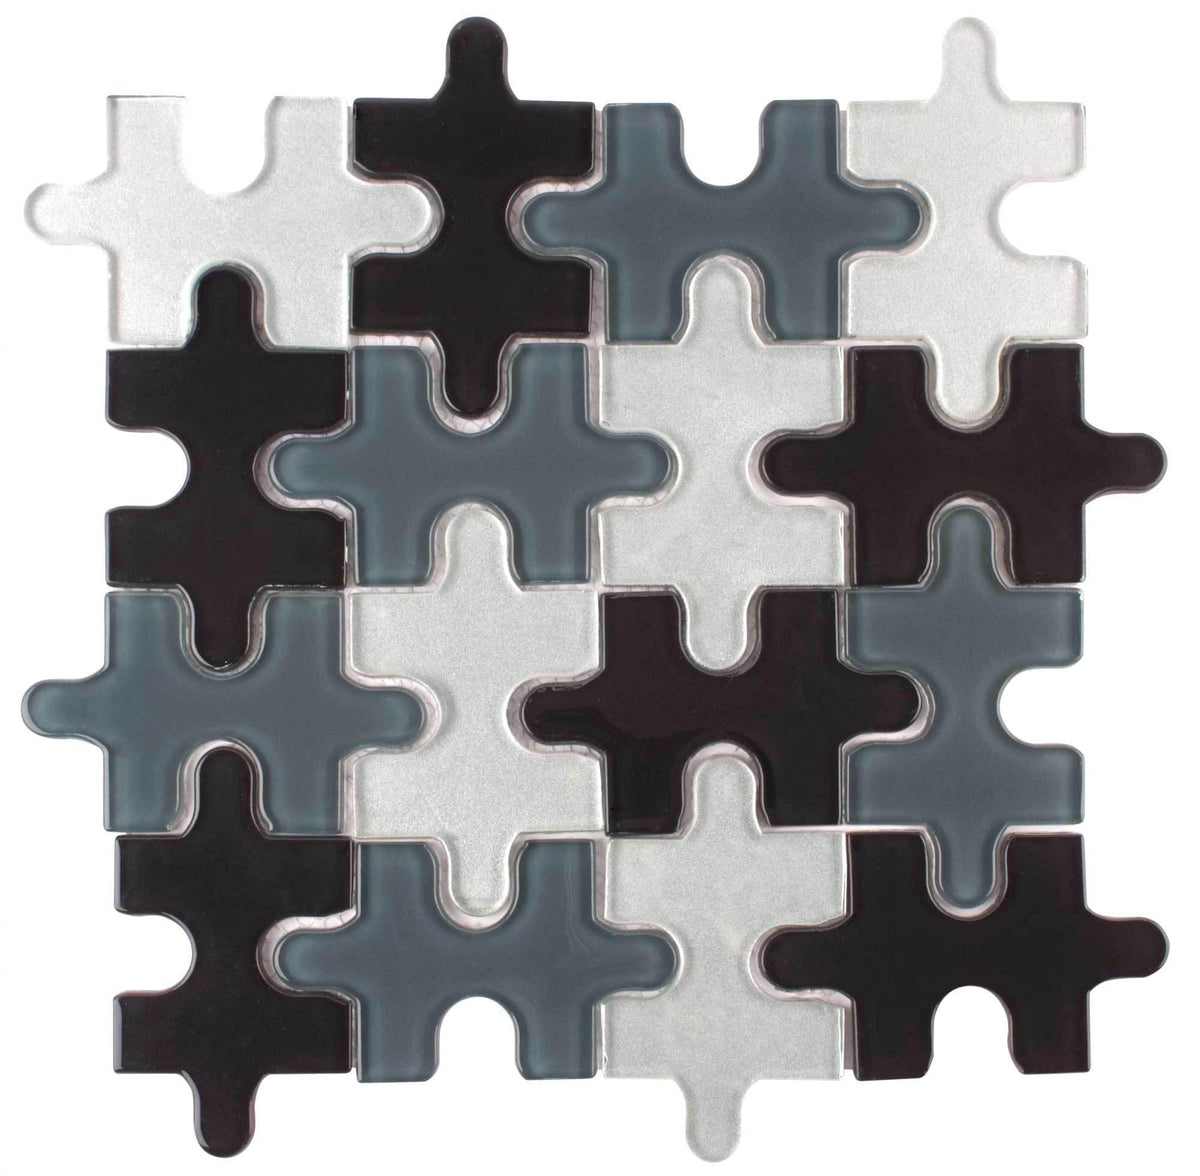 Mto0045 Puzzle Pieces Black Gray White Glossy Glass Mosaic